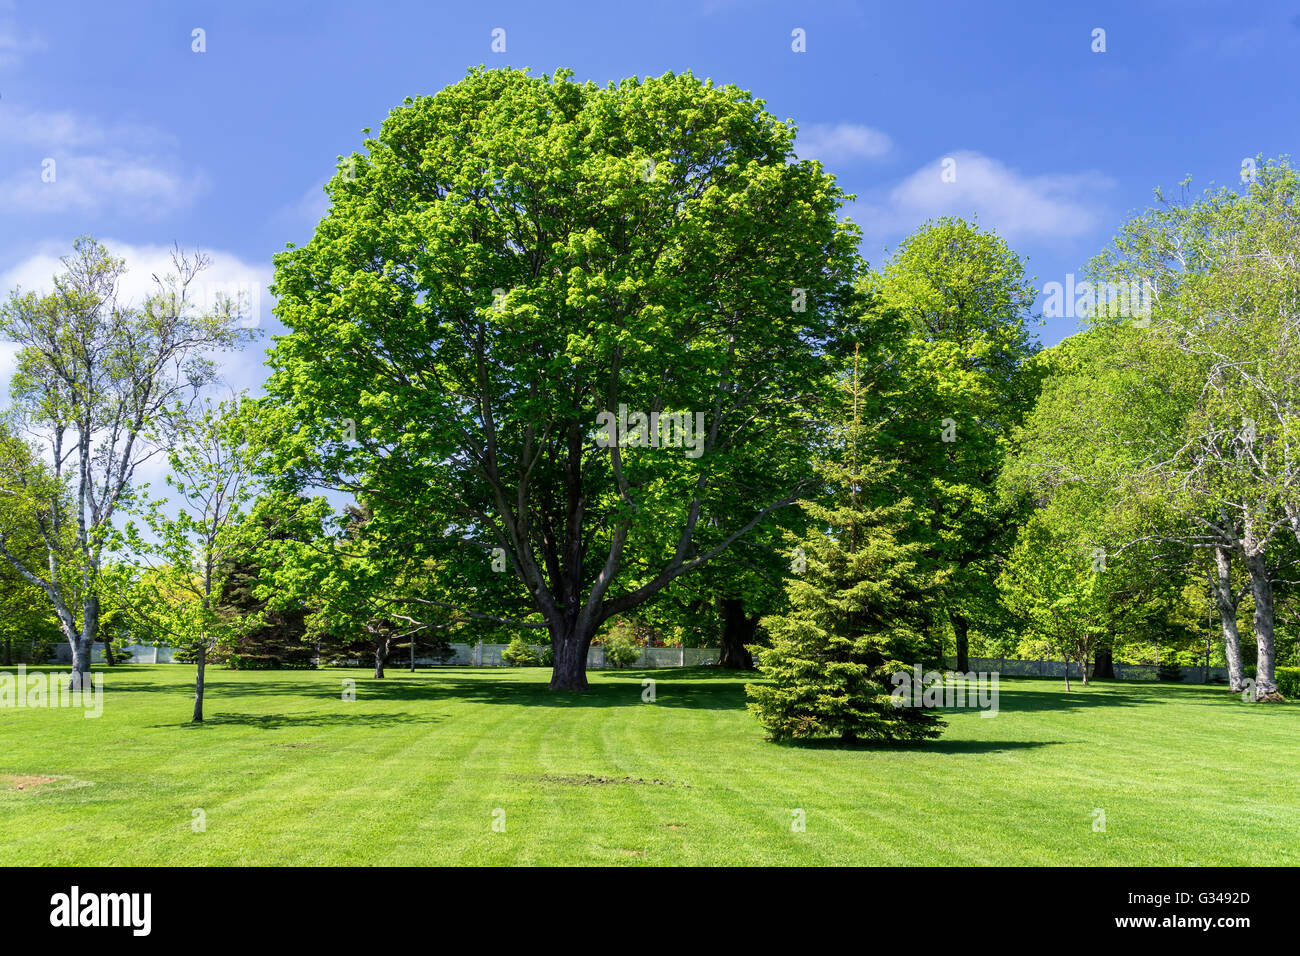 Majestic trees in an open parkland. - Stock Image